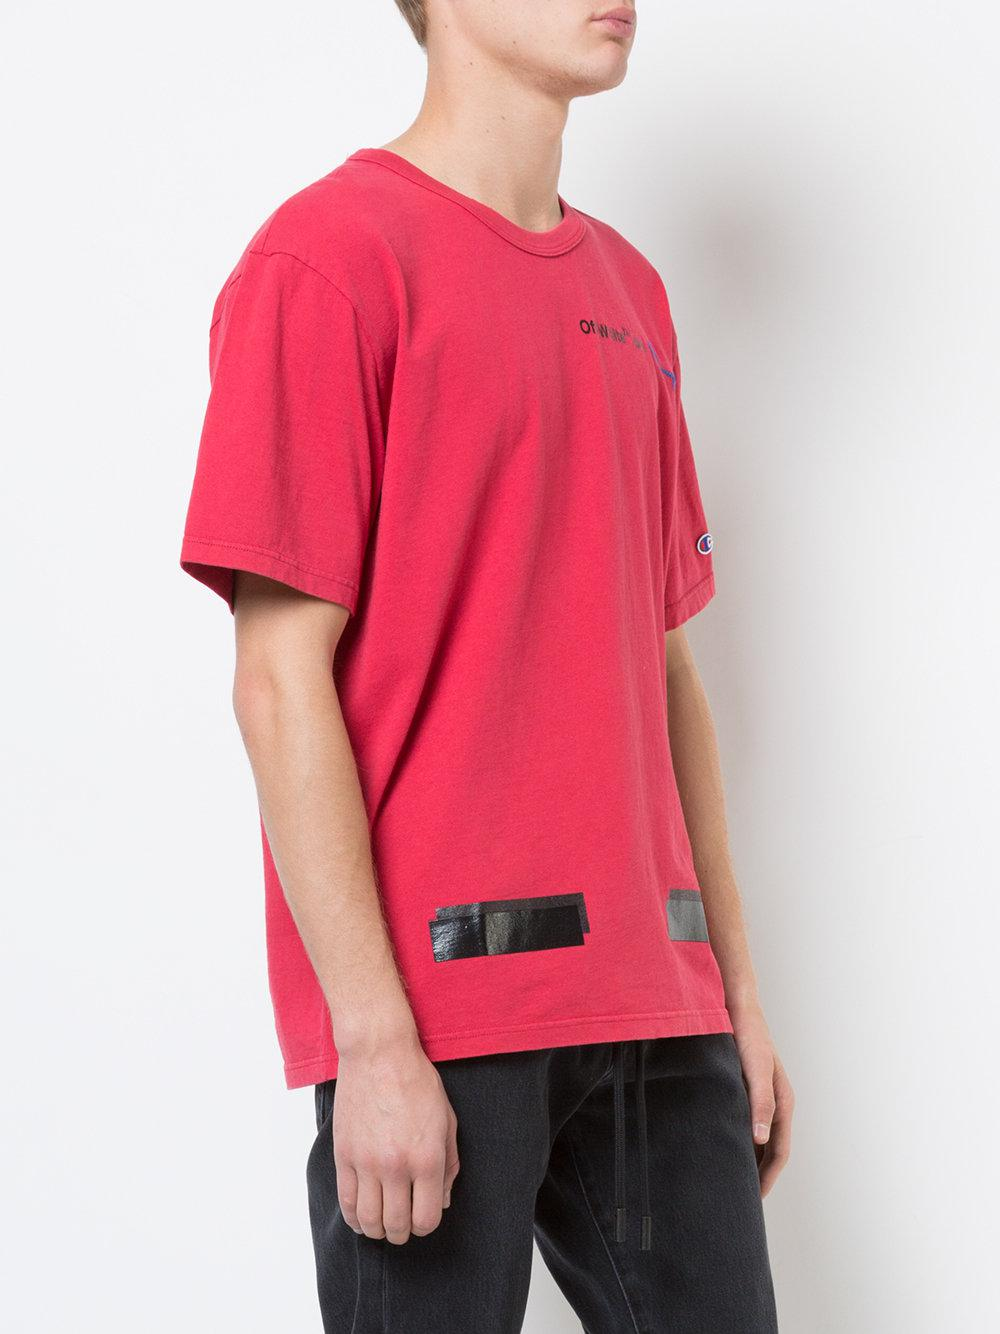 871e094f Off-White c/o Virgil Abloh Champion Arrows T-shirt in Red for Men - Lyst